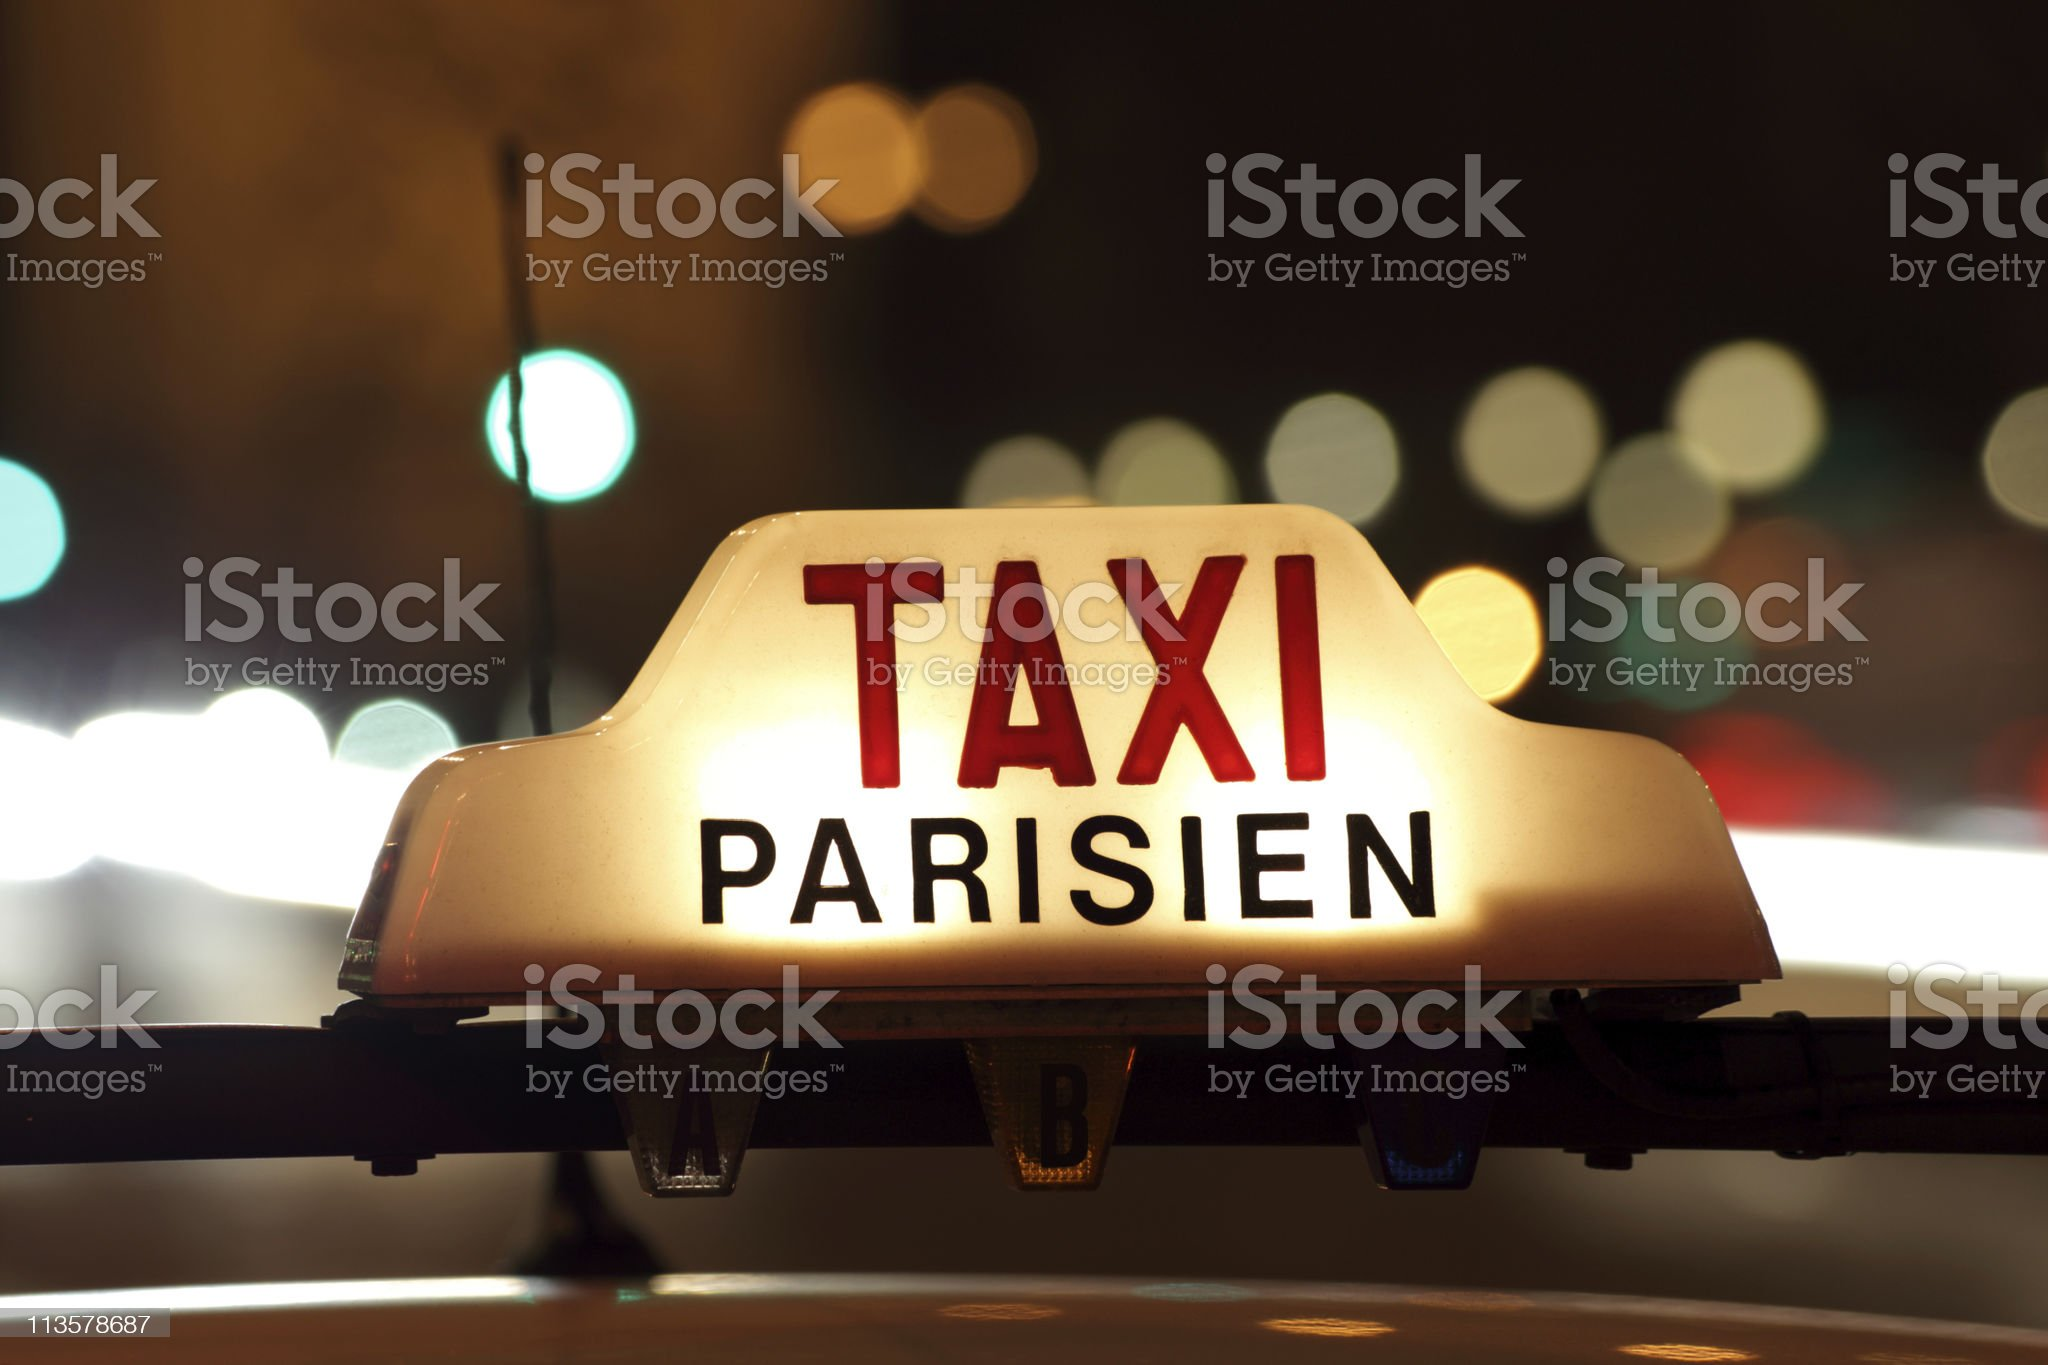 Paris taxi by the Arc de Triomphe royalty-free stock photo